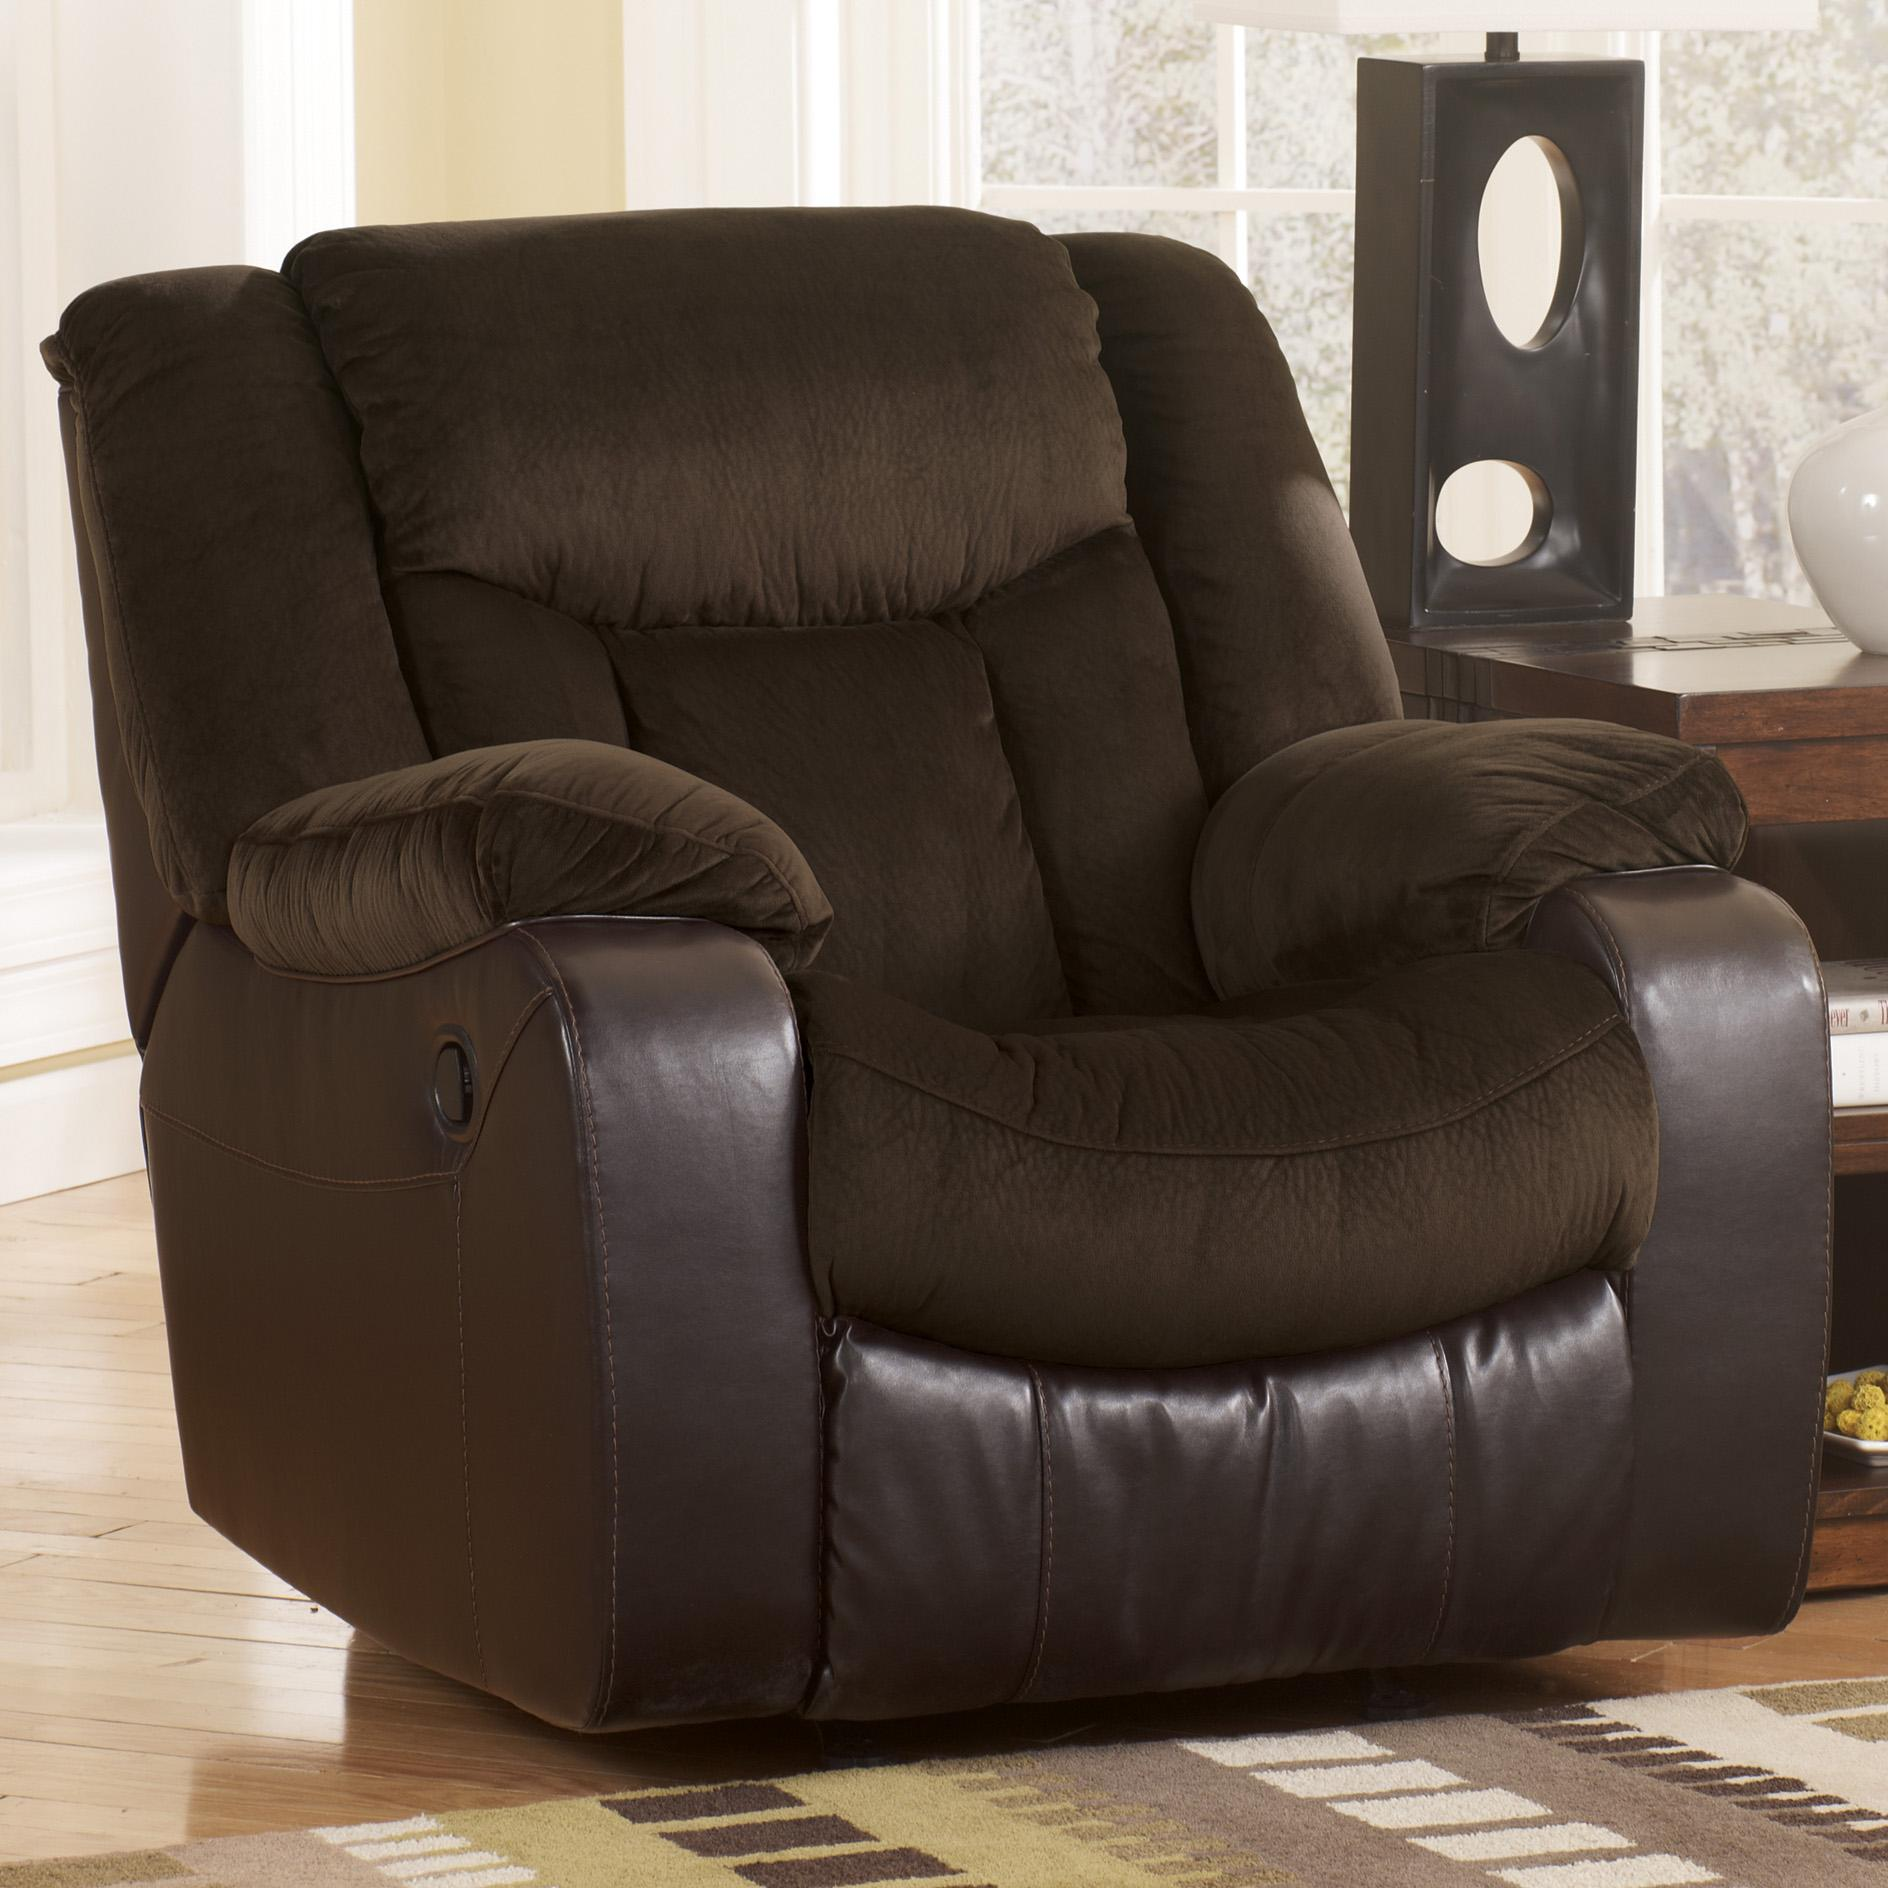 Signature Design by Ashley Tafton - Java Rocker Recliner - Item Number: 7920225